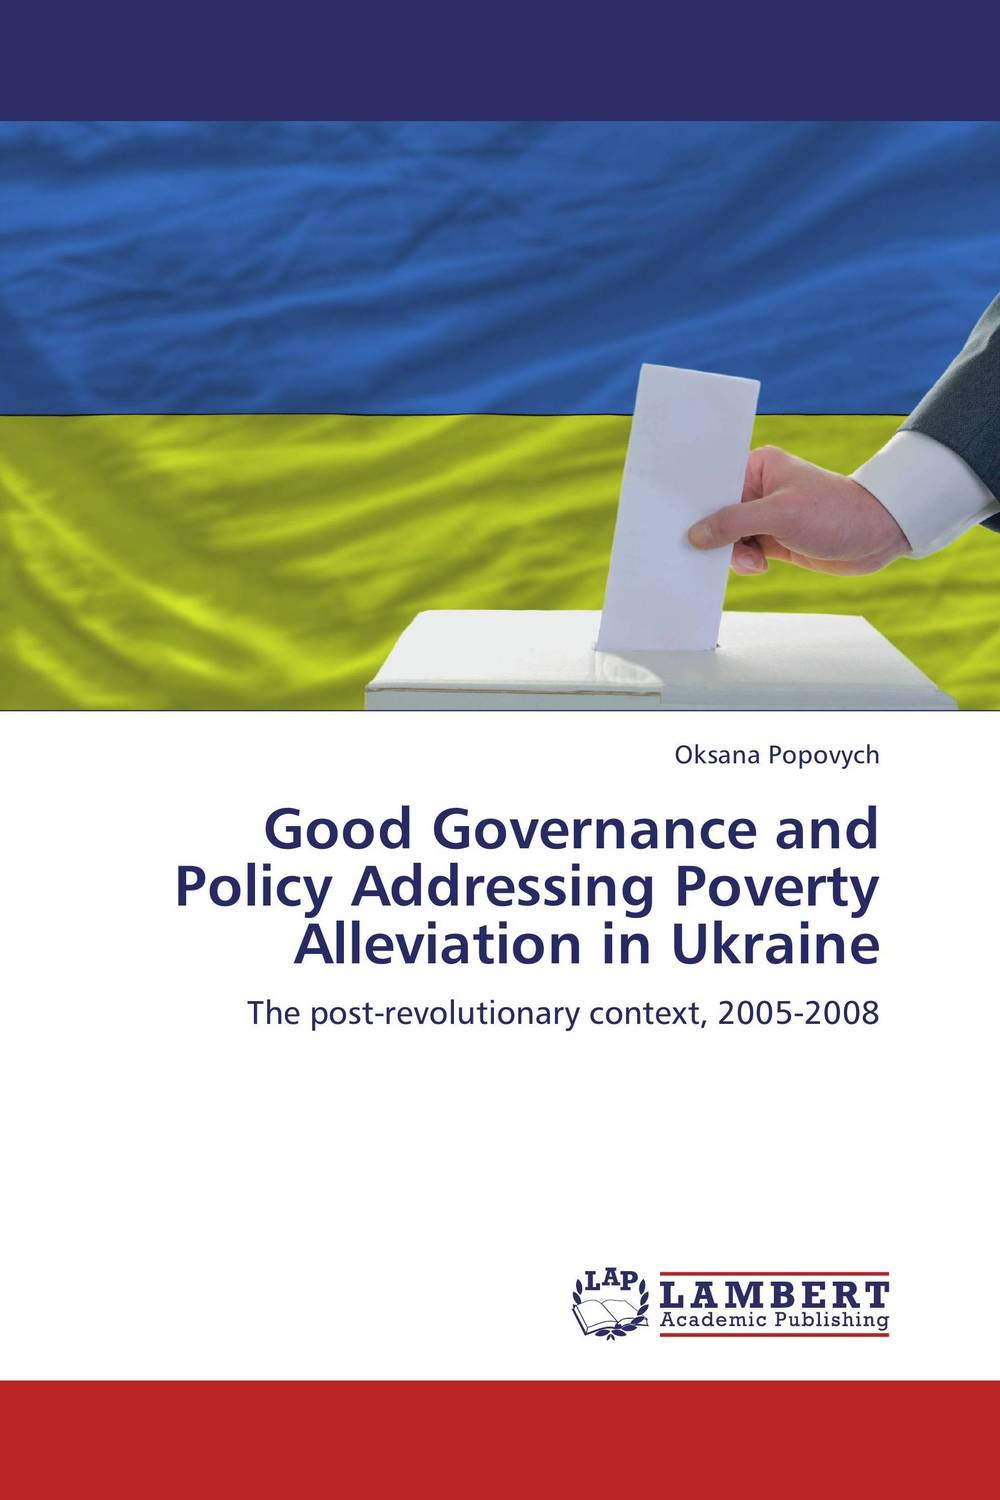 Good Governance and Policy Addressing Poverty Alleviation in Ukraine role of ict in rural poverty alleviation